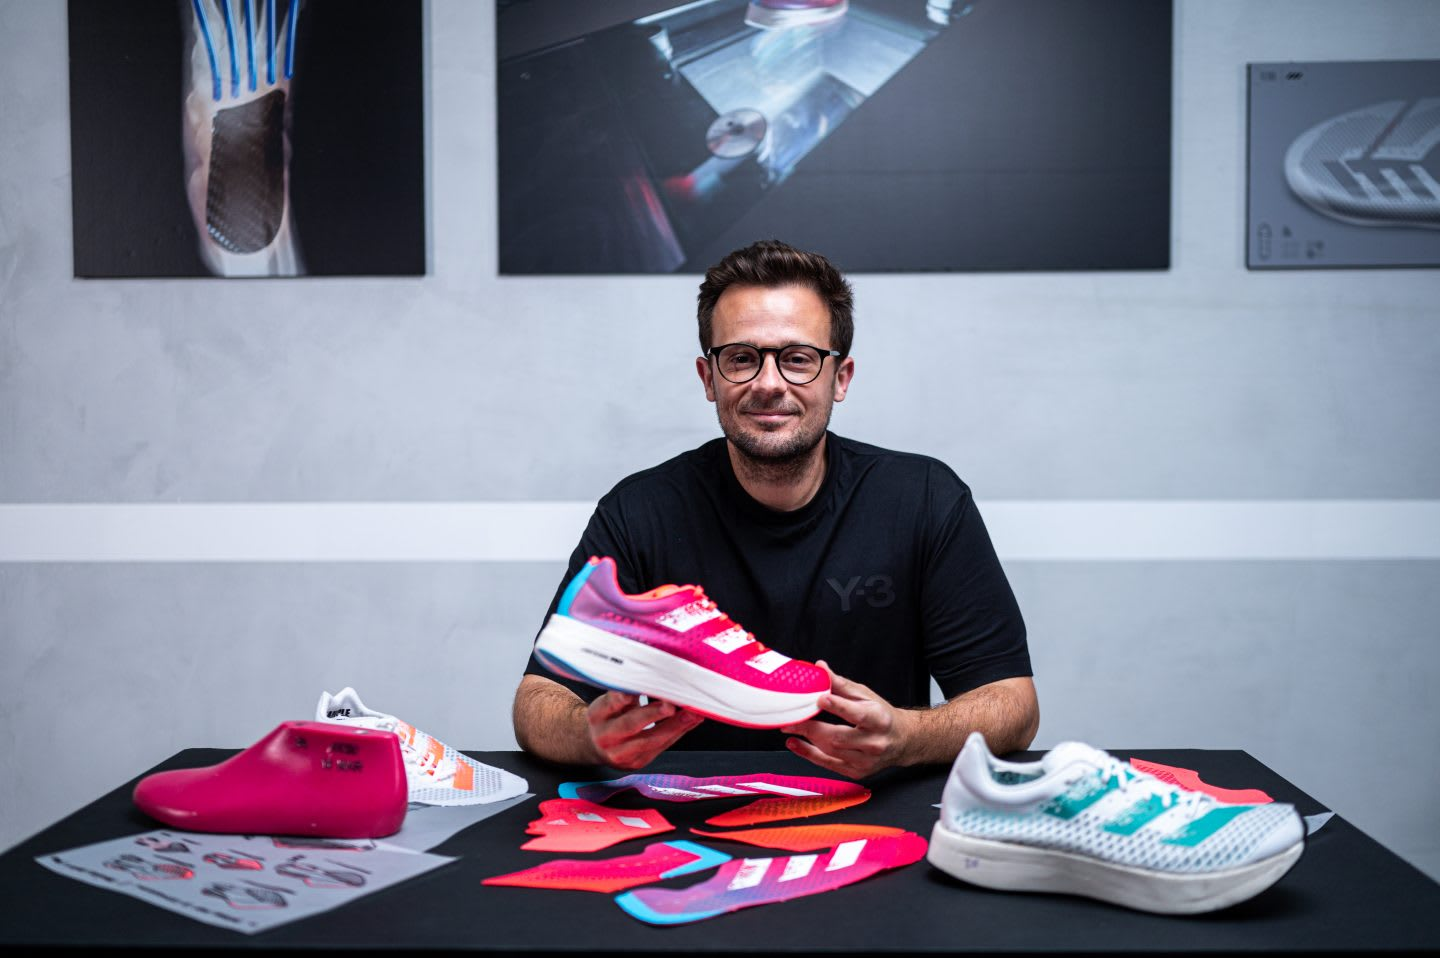 adidas Brand Marketing employee Caio Amato with the adidas adizero adios Pro, running, shoes, sports, technology, innovation, design